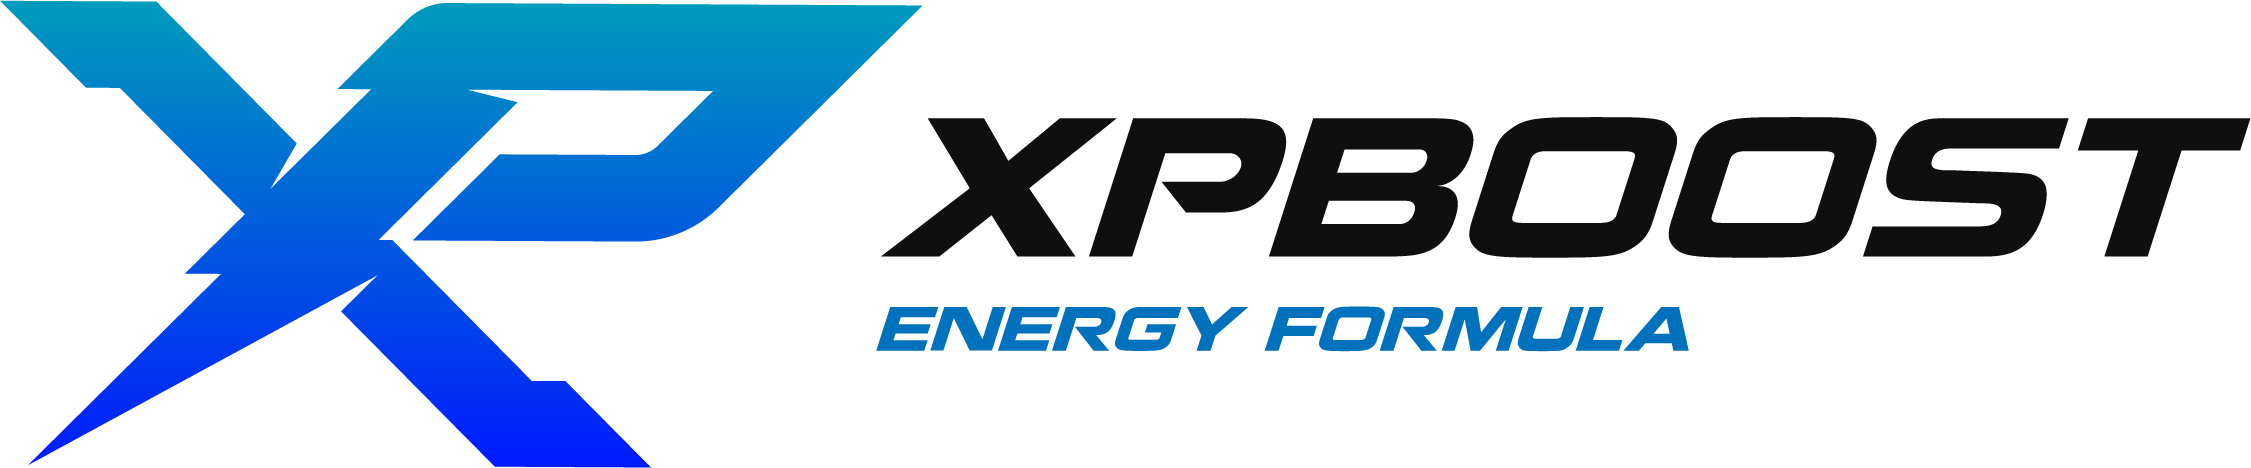 XPBOOST LOGO- GAMING ENERGY AND FOCUS FORMULA